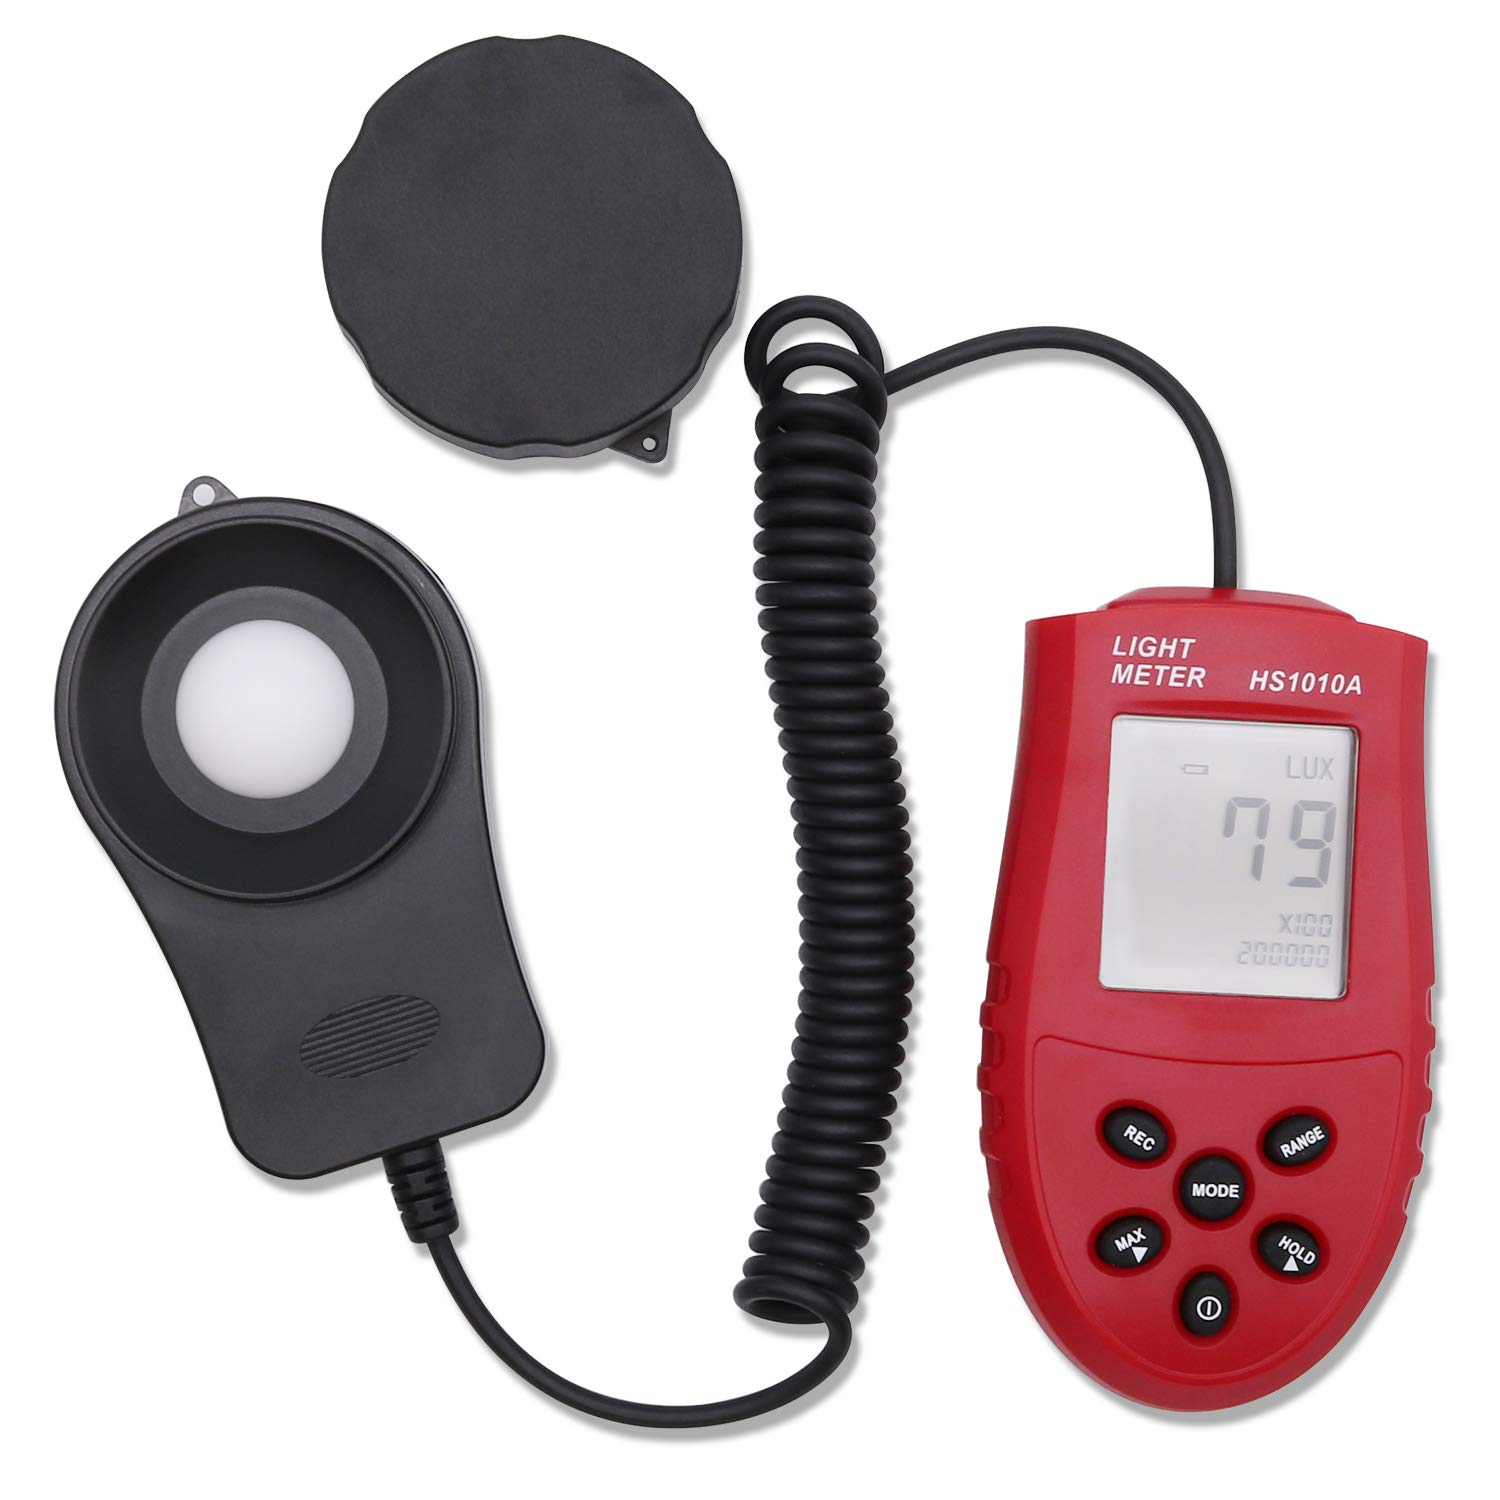 TRENDBOX Digital Light Meter Tester Luxmeter Luminometer Photometer High Accurate 200000 Lux/FC HS1010A with LCD Display Handheld Portable